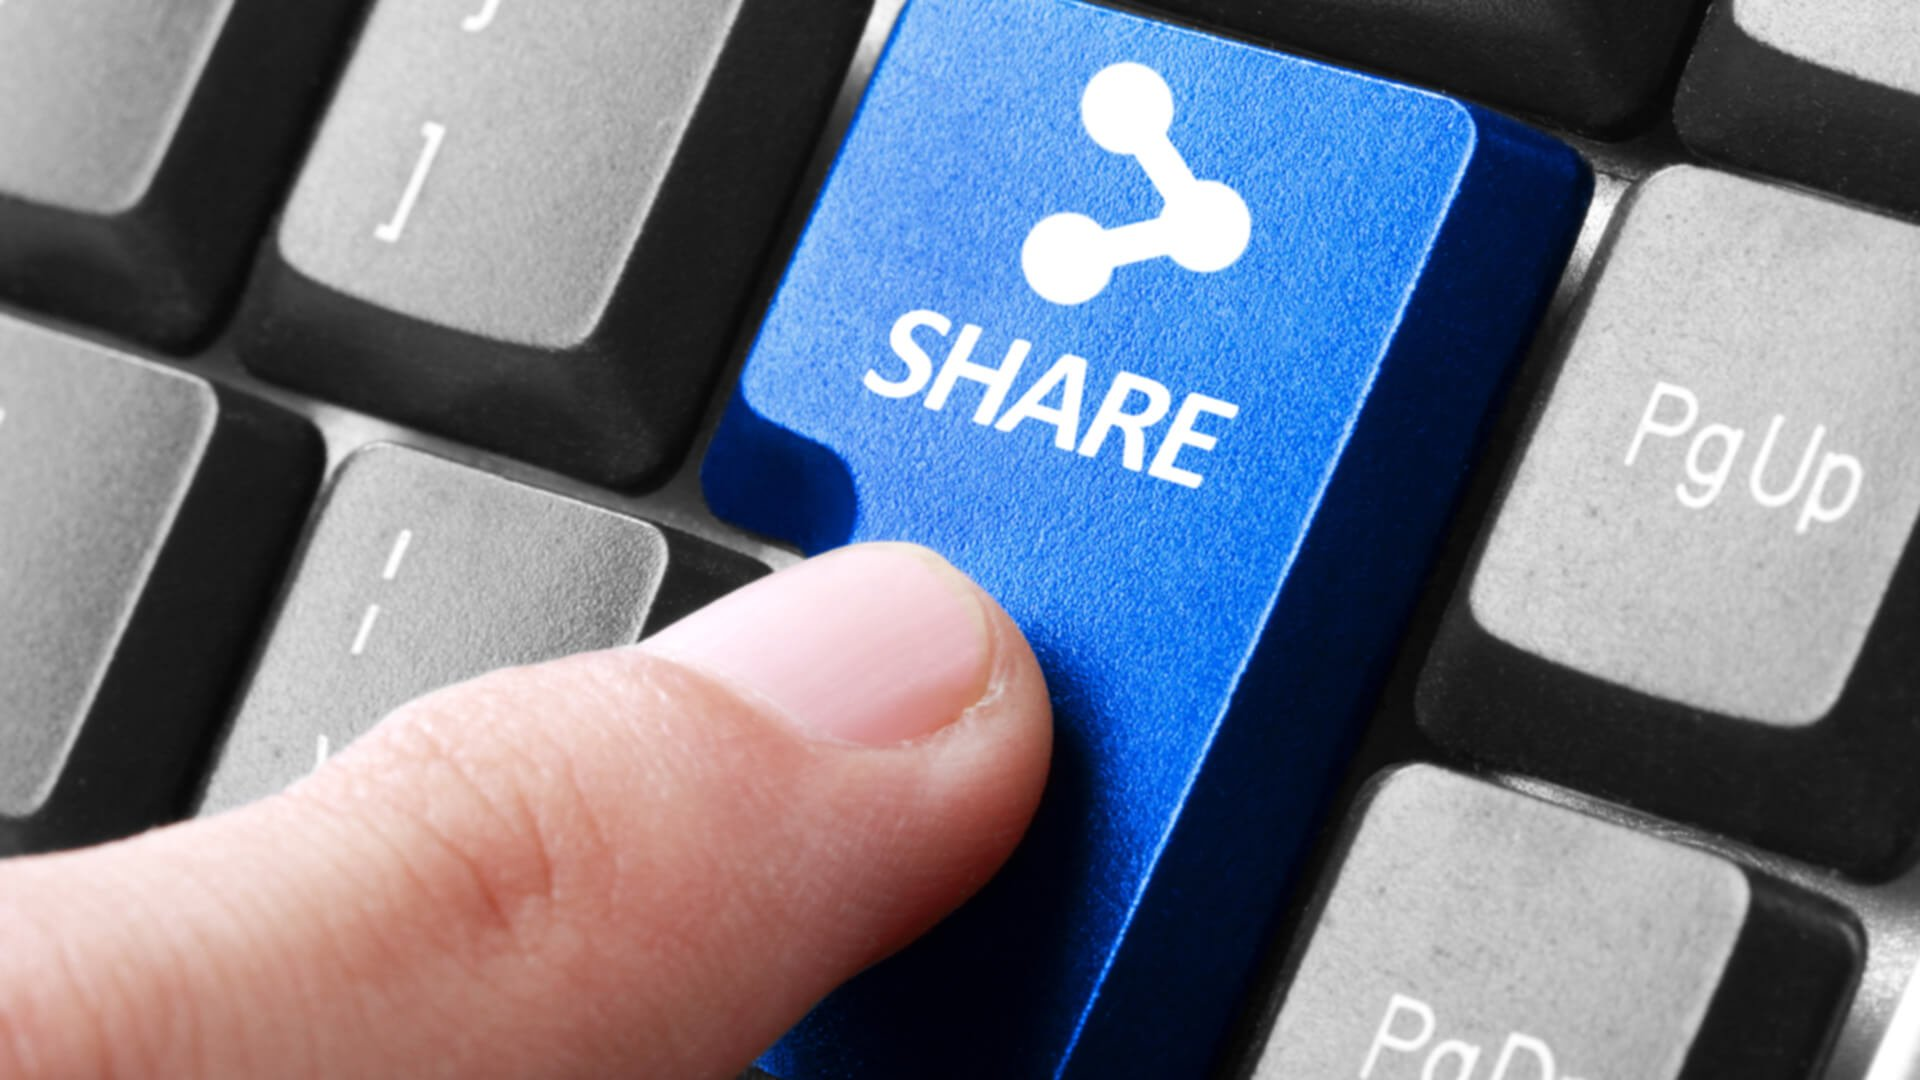 share sharing social media keyboard ss 1920